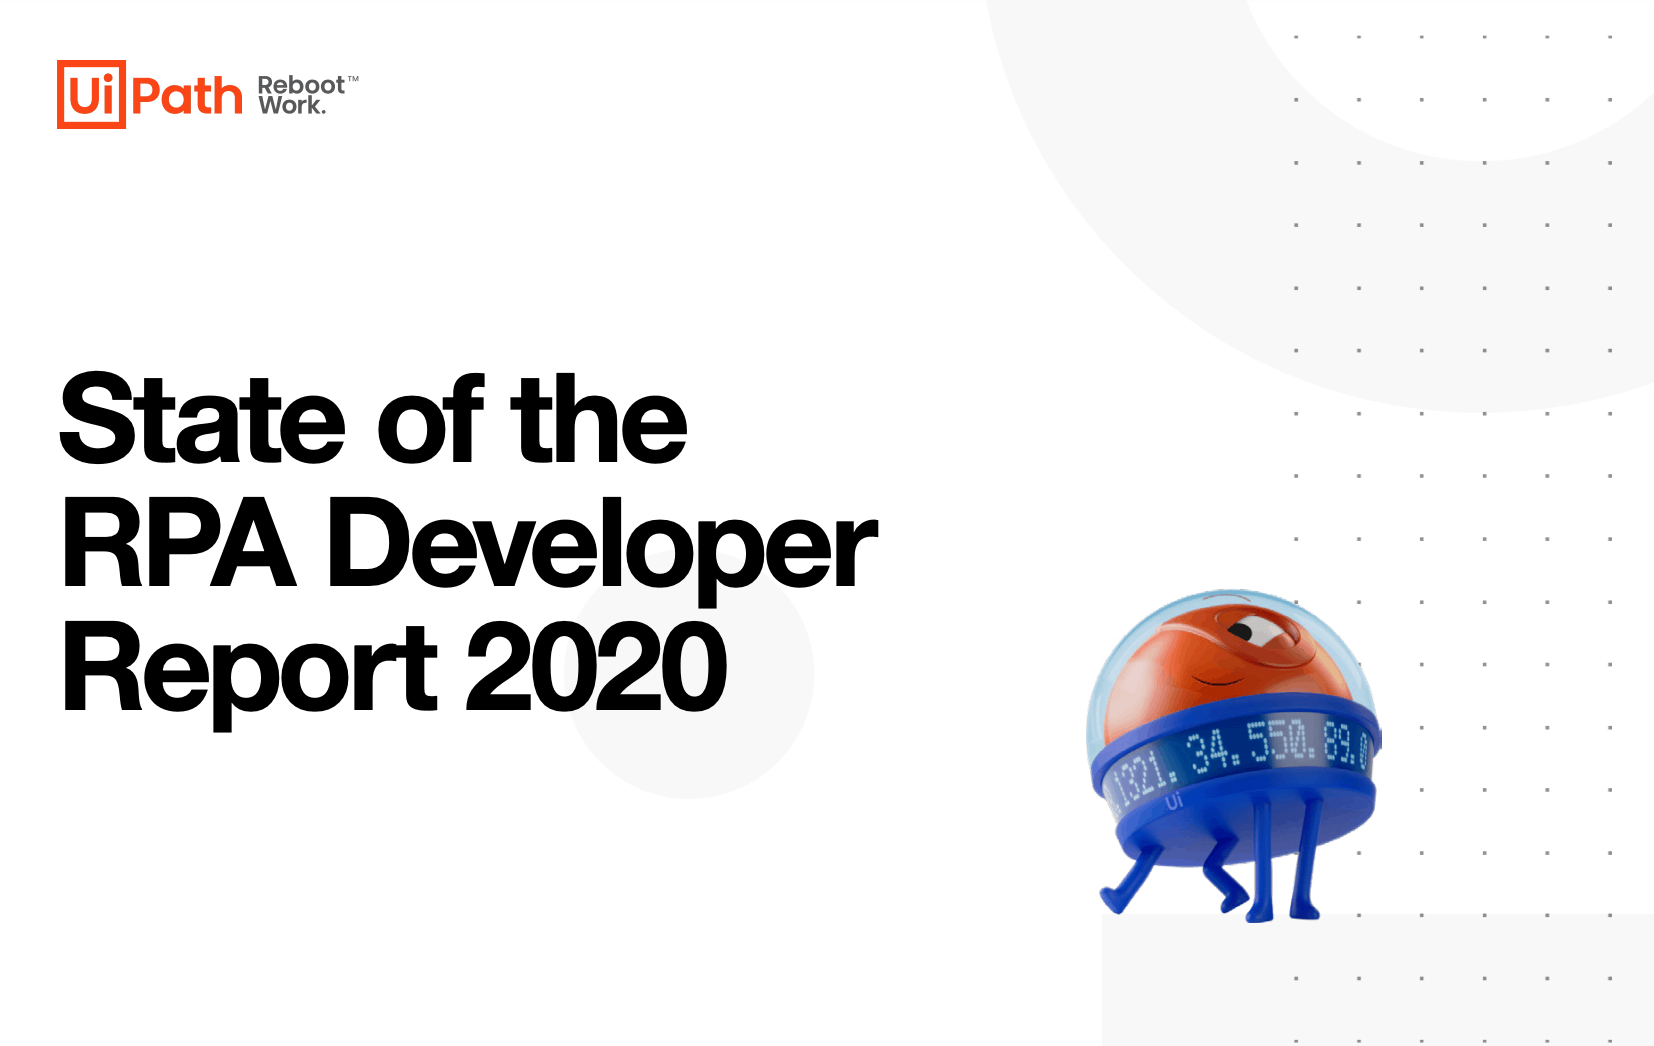 UiPath State of the RPA Developer